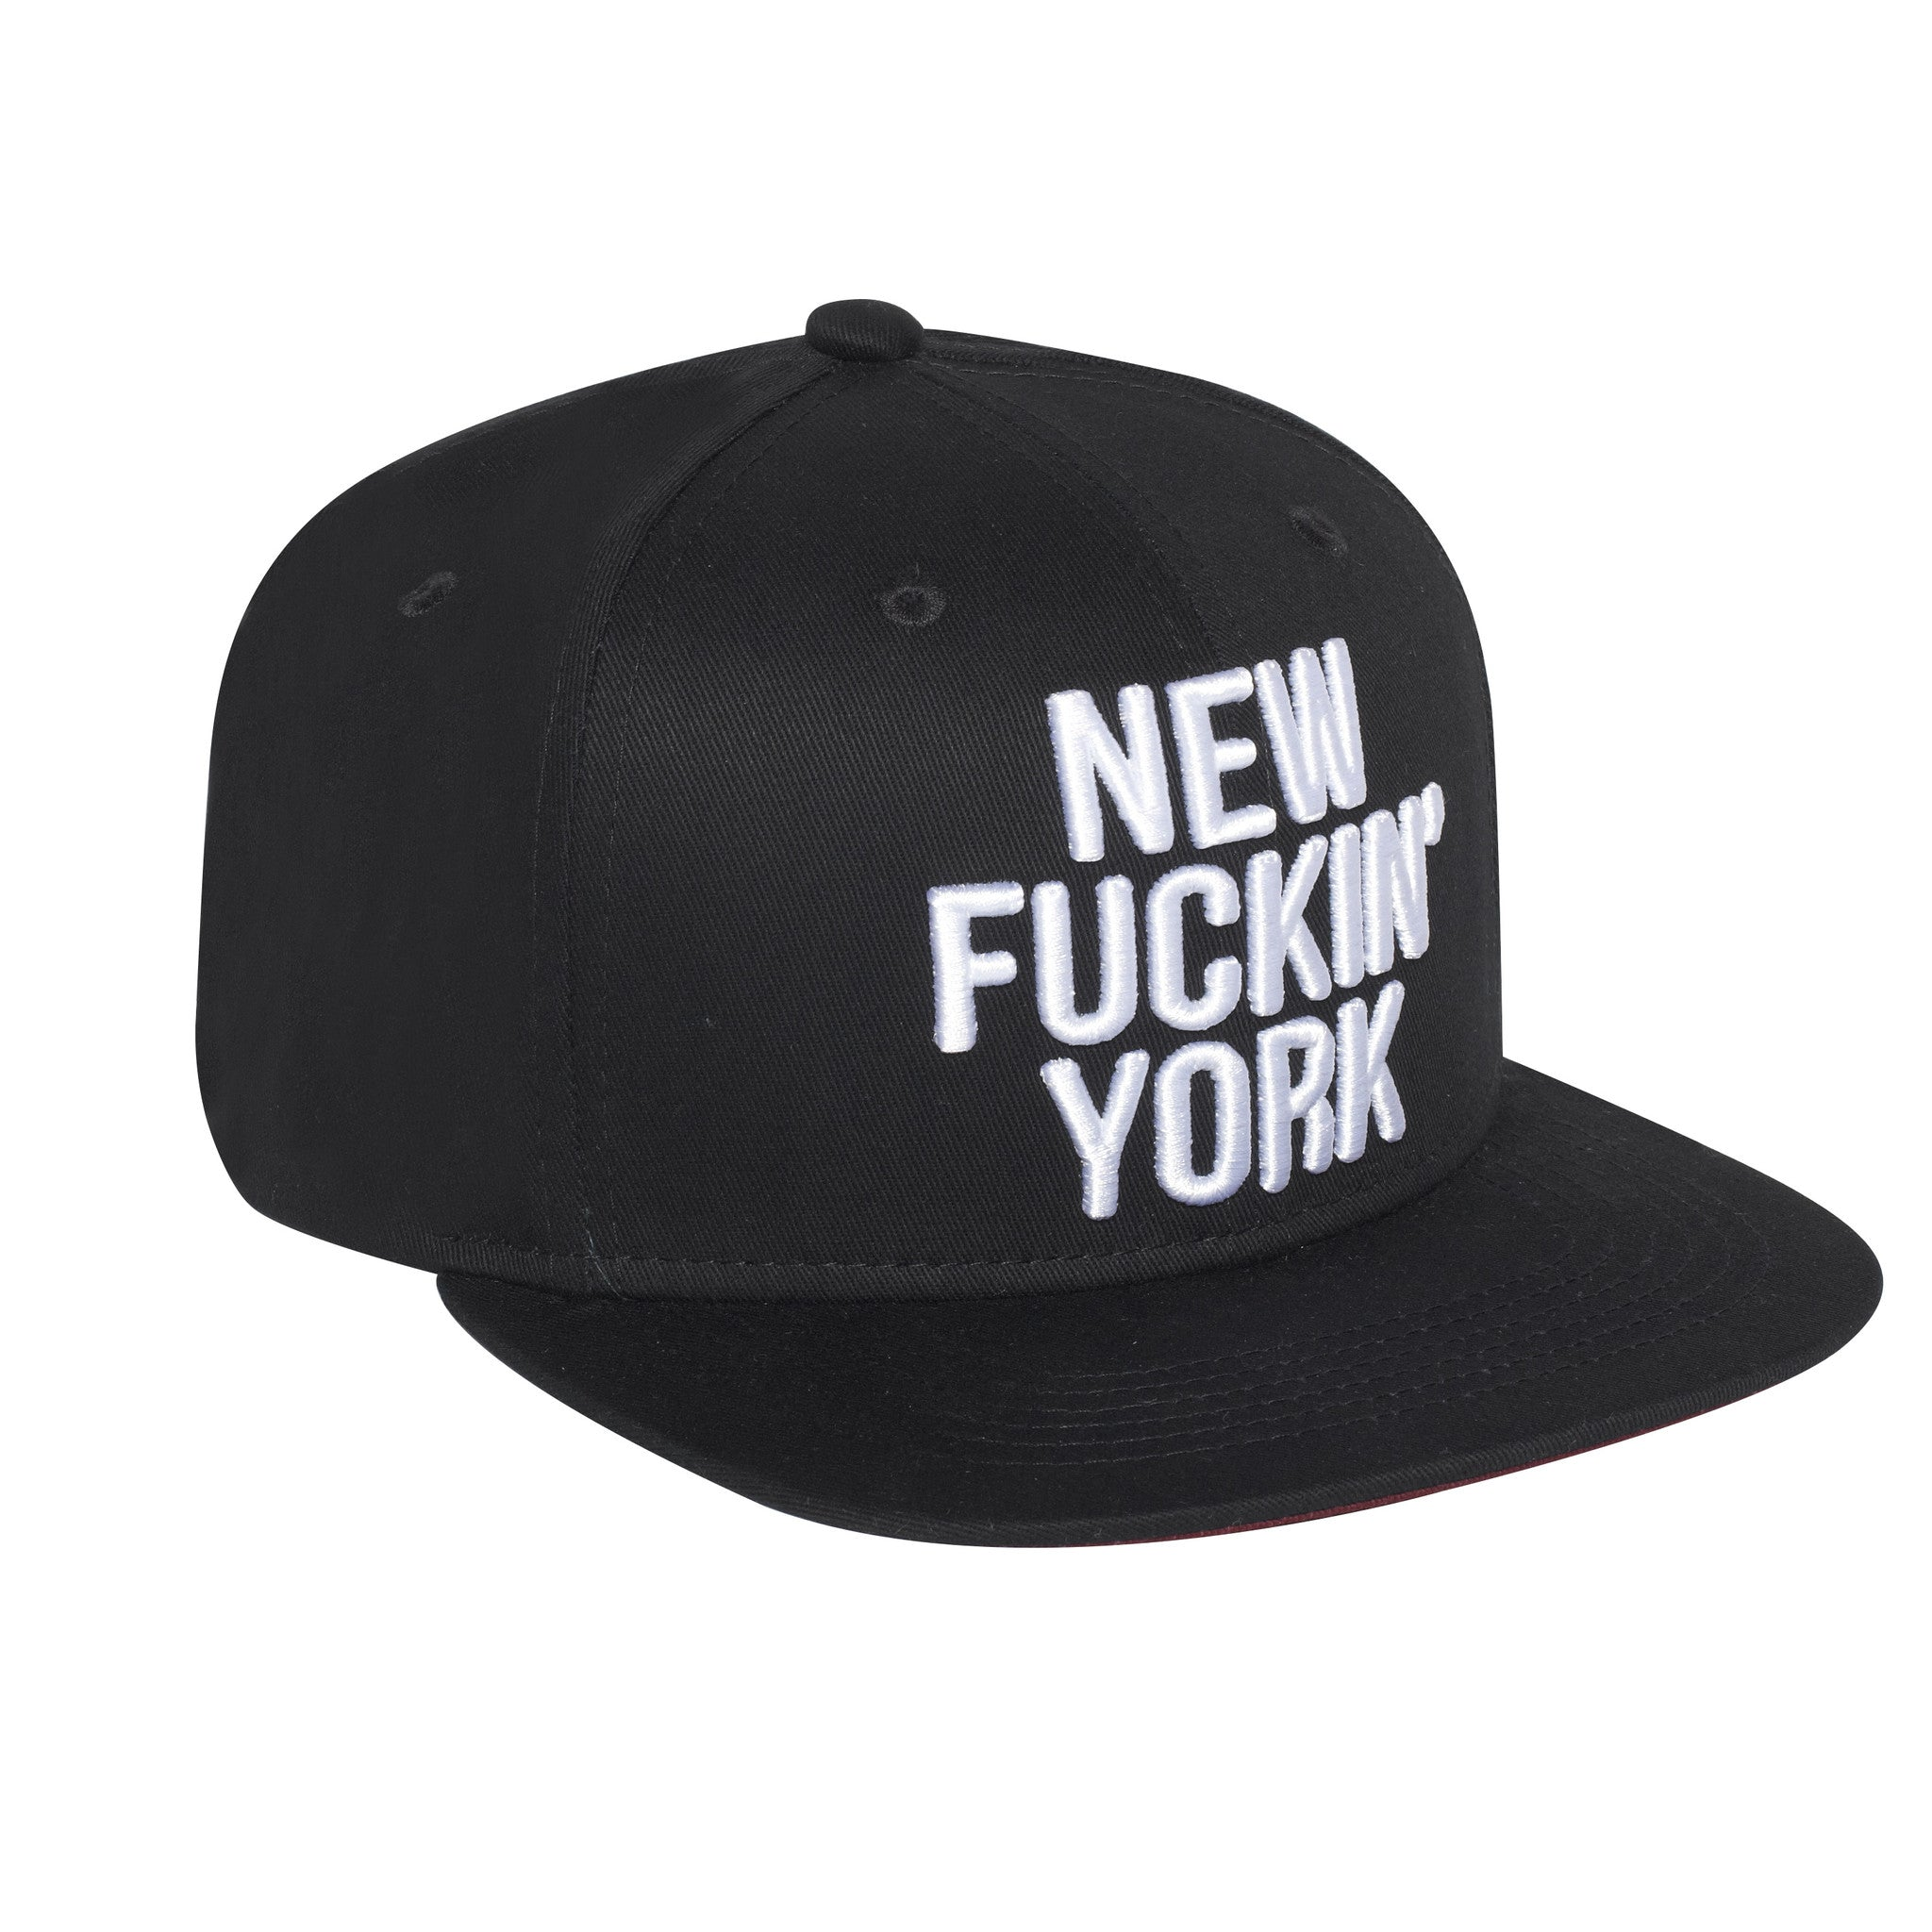 039c1a6d579 New Fuckin  York Baseballcap Hat - Snapback closure (Cotton)